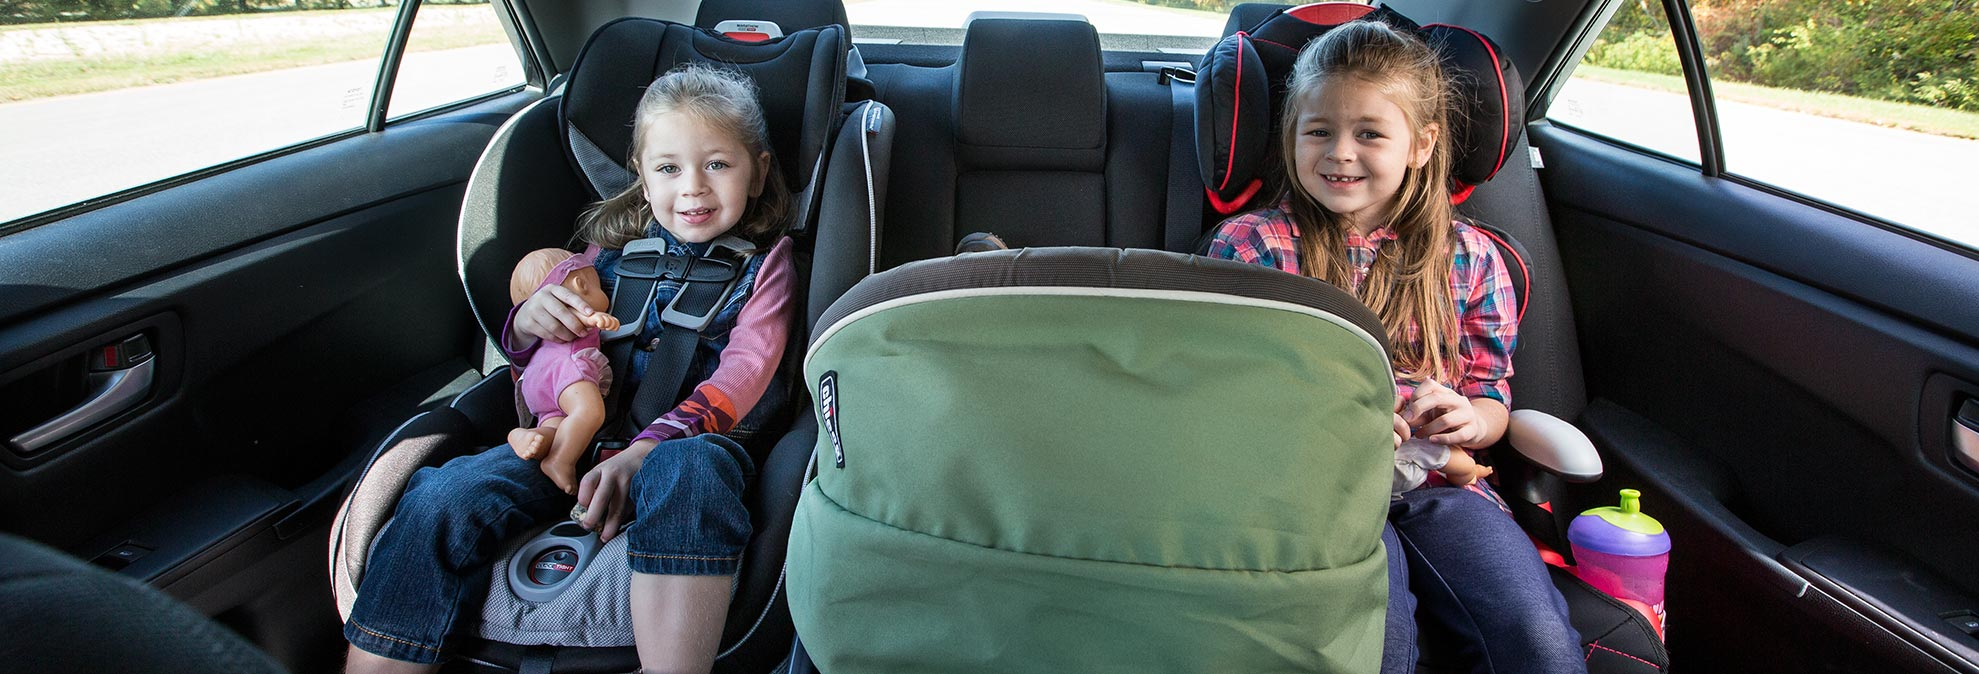 Best Newborn Car Seat >> How to Fit Car Seats Three Across - Consumer Reports